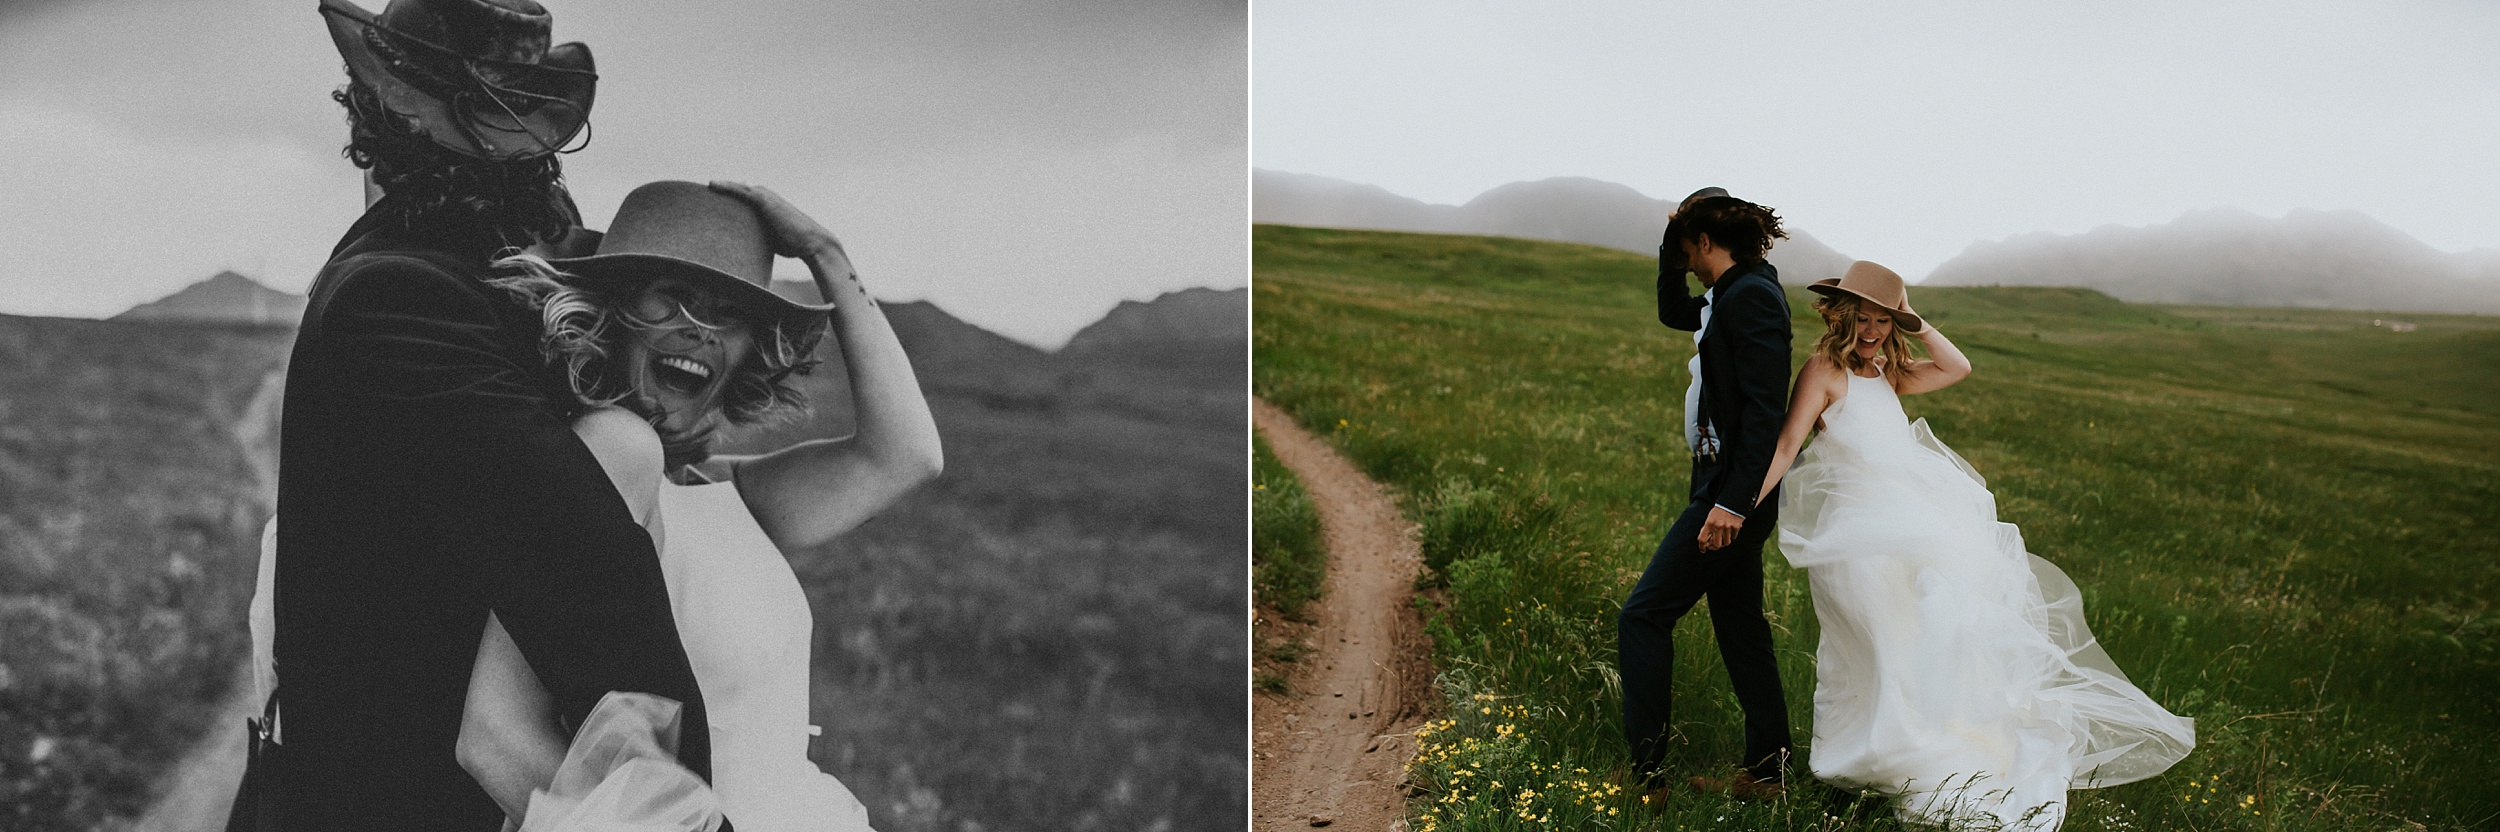 Boulder_Colorado_Elopement_Fringe_Boho_Mountains-17.jpg